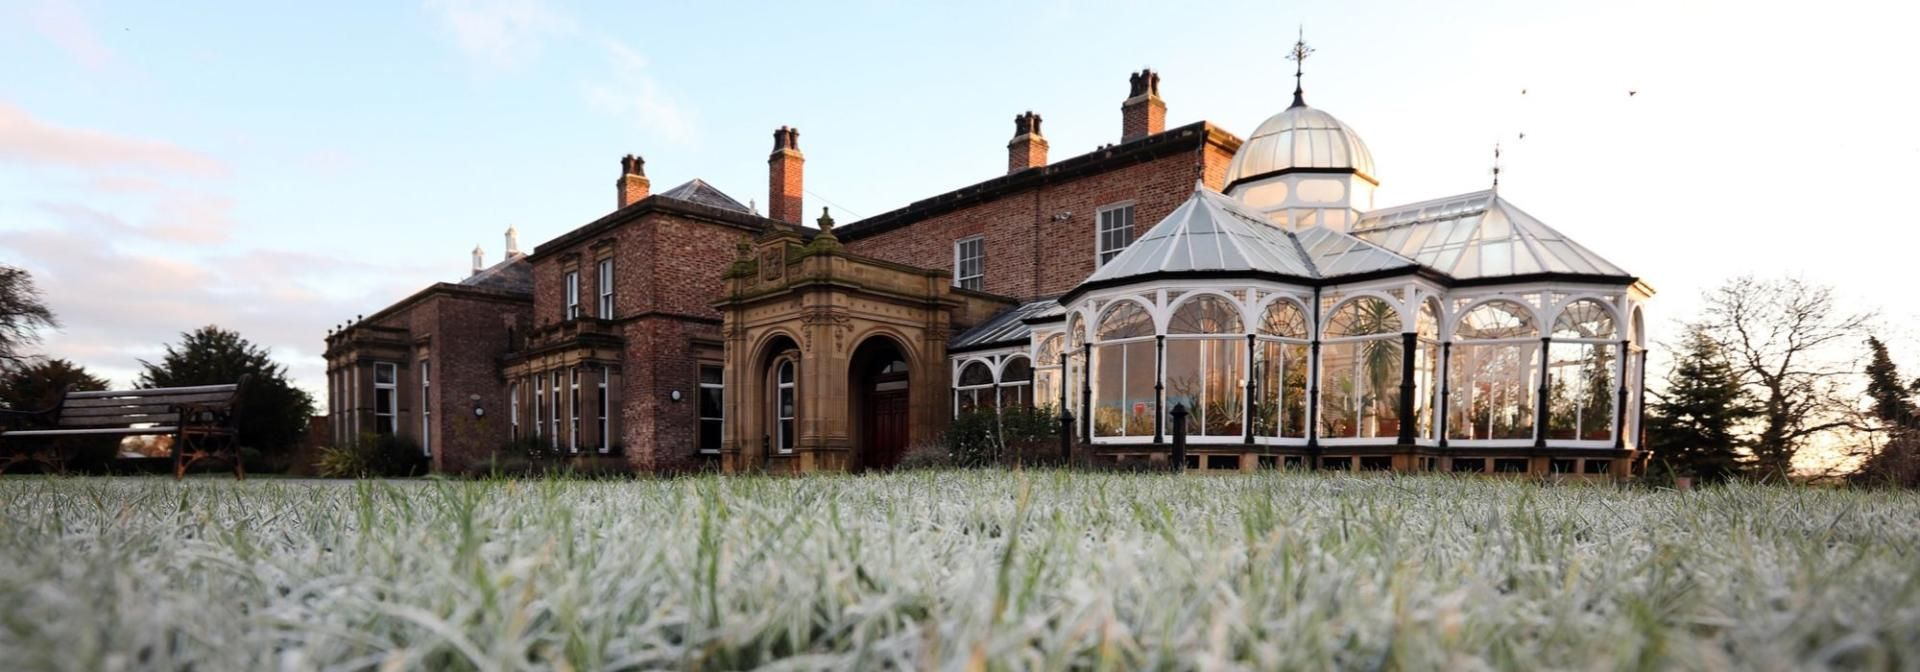 View Of The Hall And Winter Garden On A Frosty Day